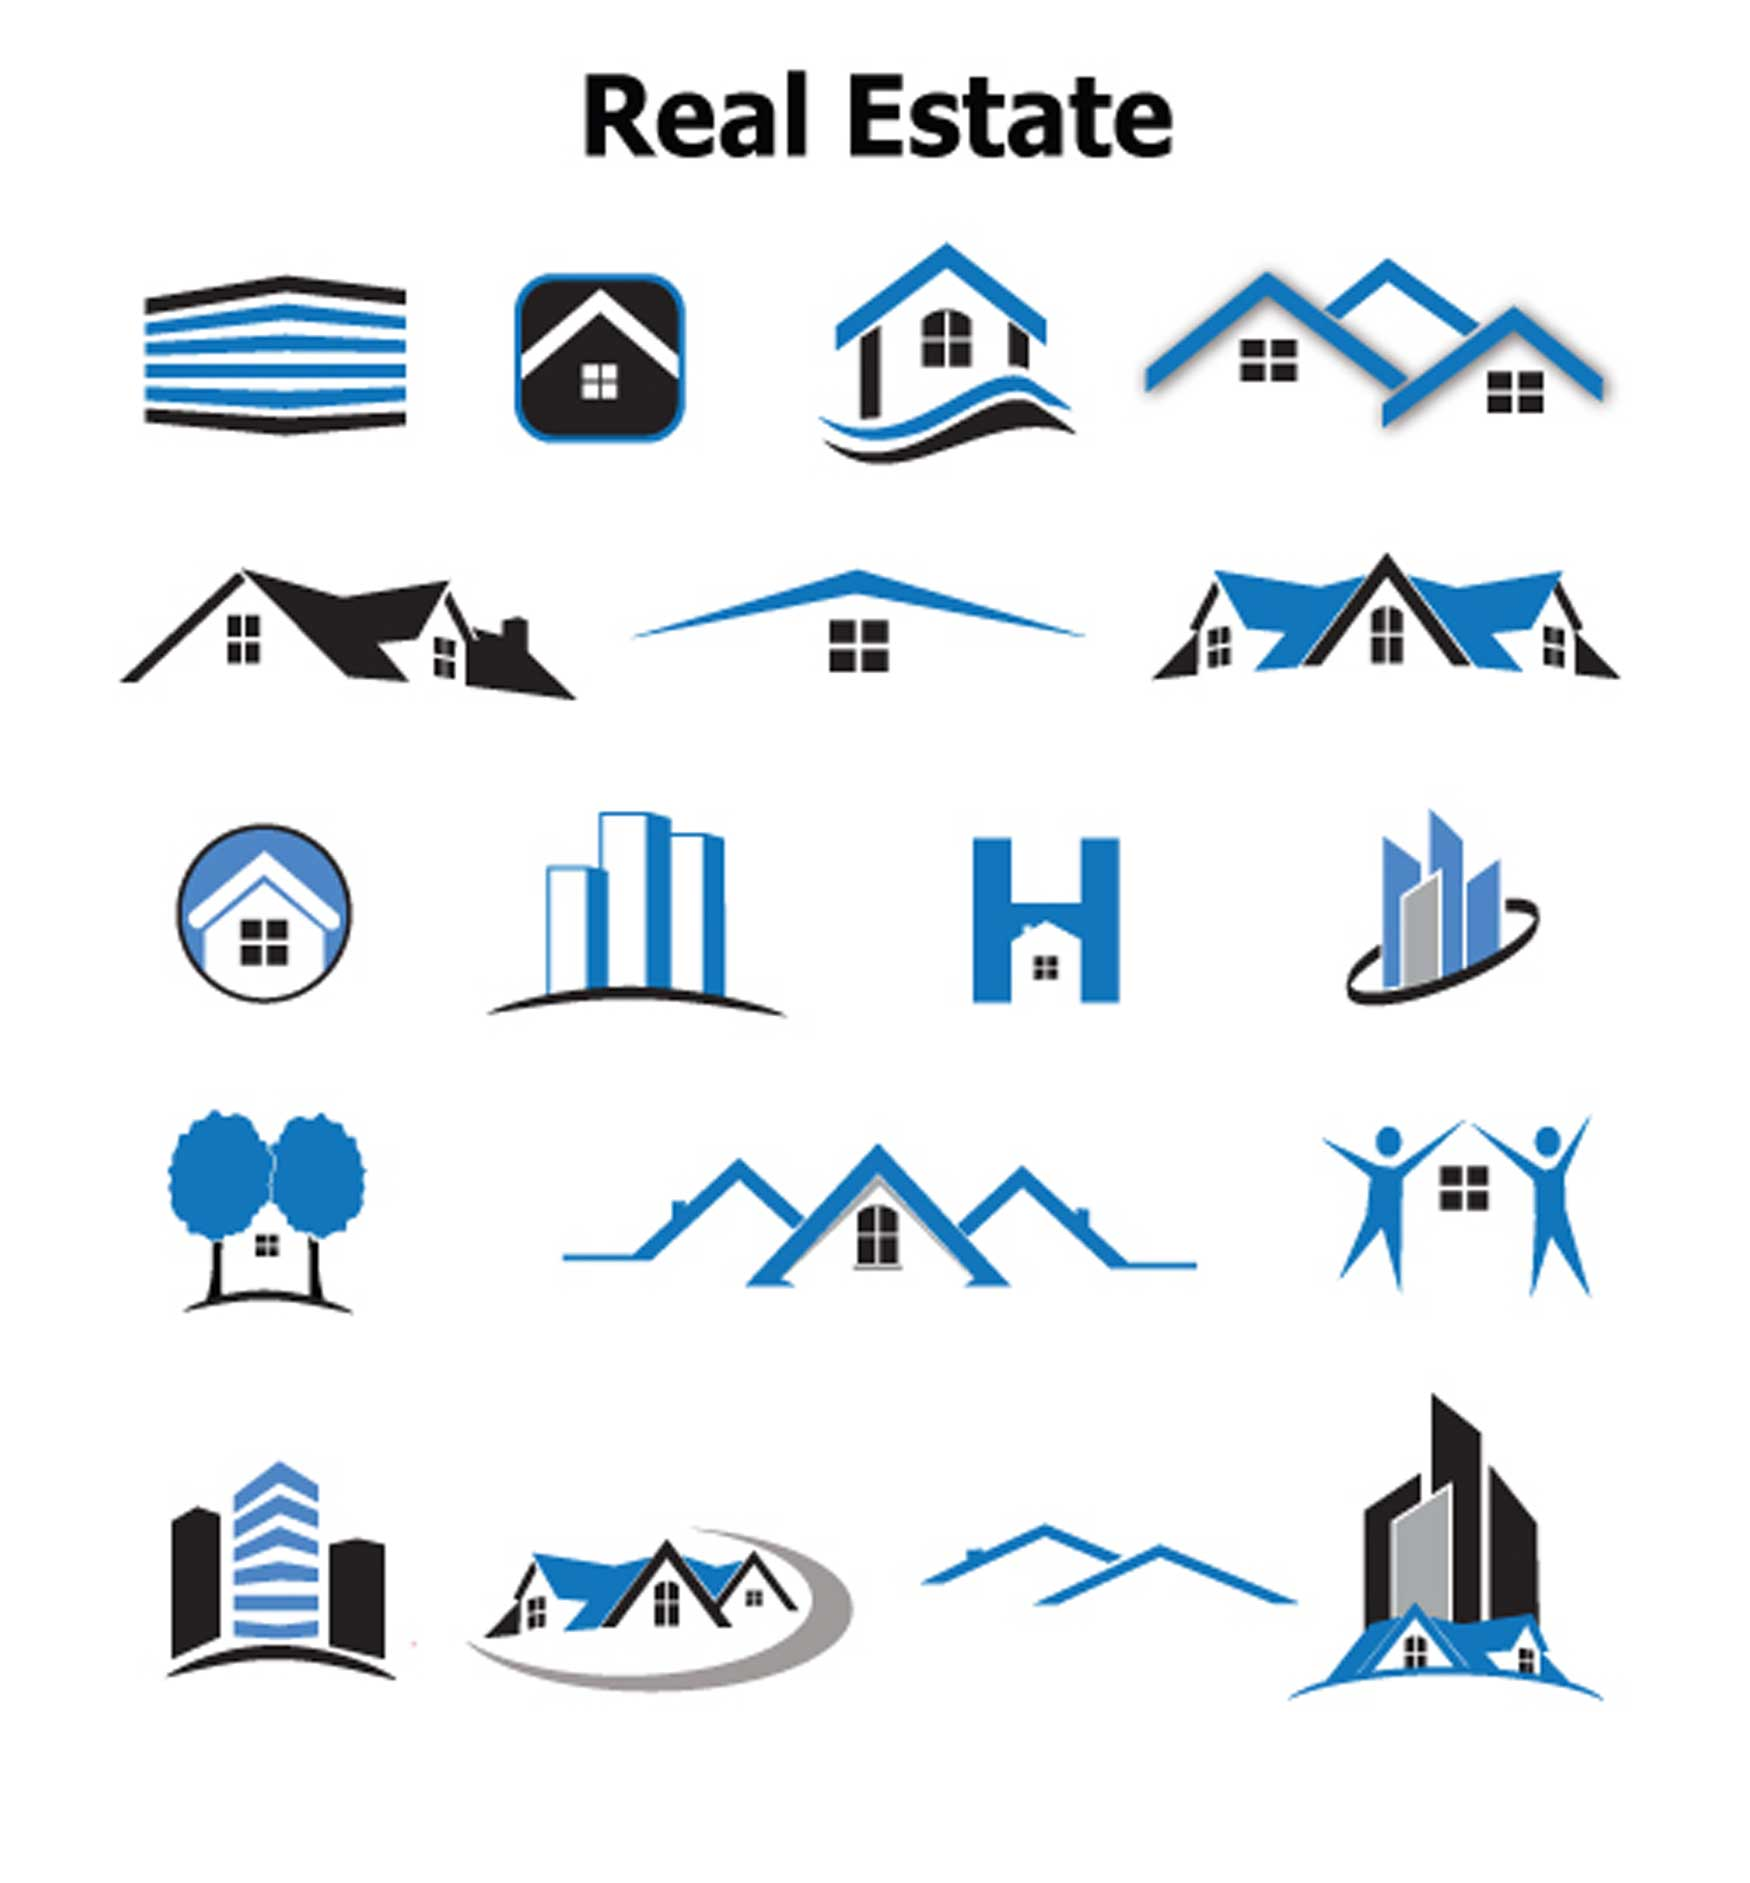 overused real estate logo concepts to avoid